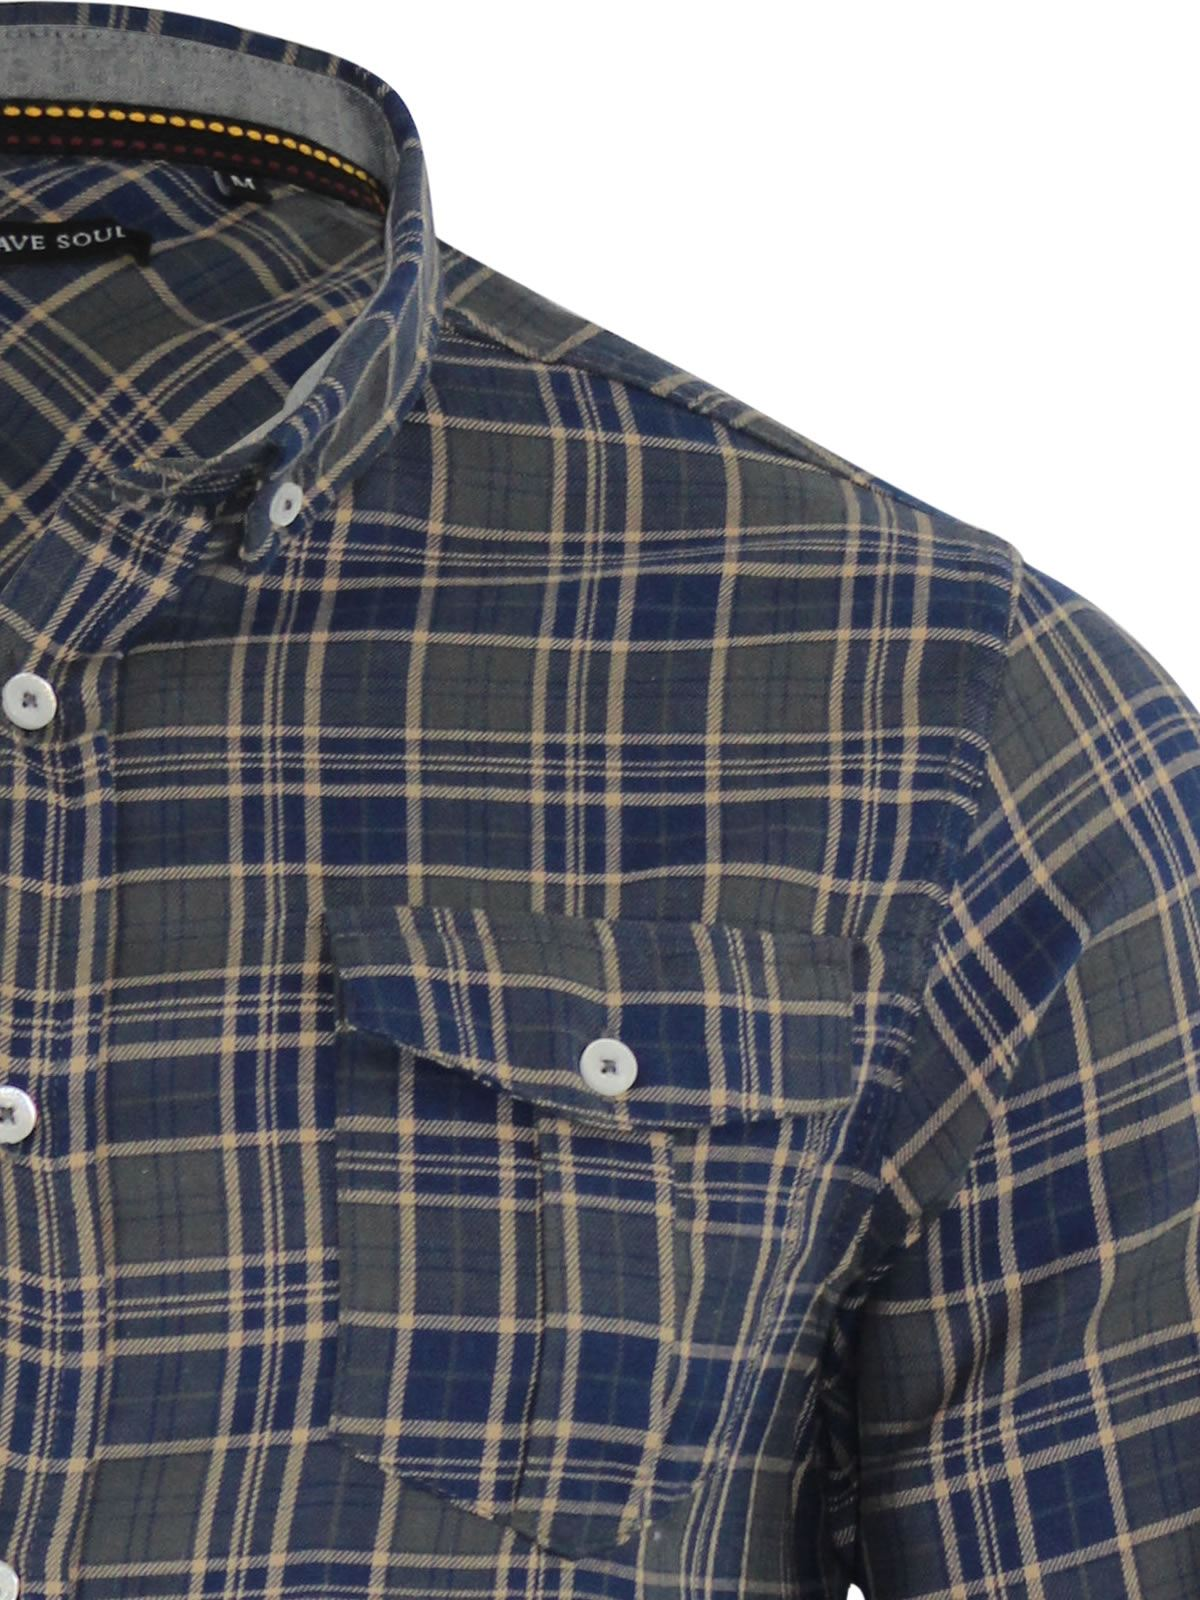 Mens-Check-Shirt-Brave-Soul-Flannel-Brushed-Cotton-Long-Sleeve-Casual-Top thumbnail 64